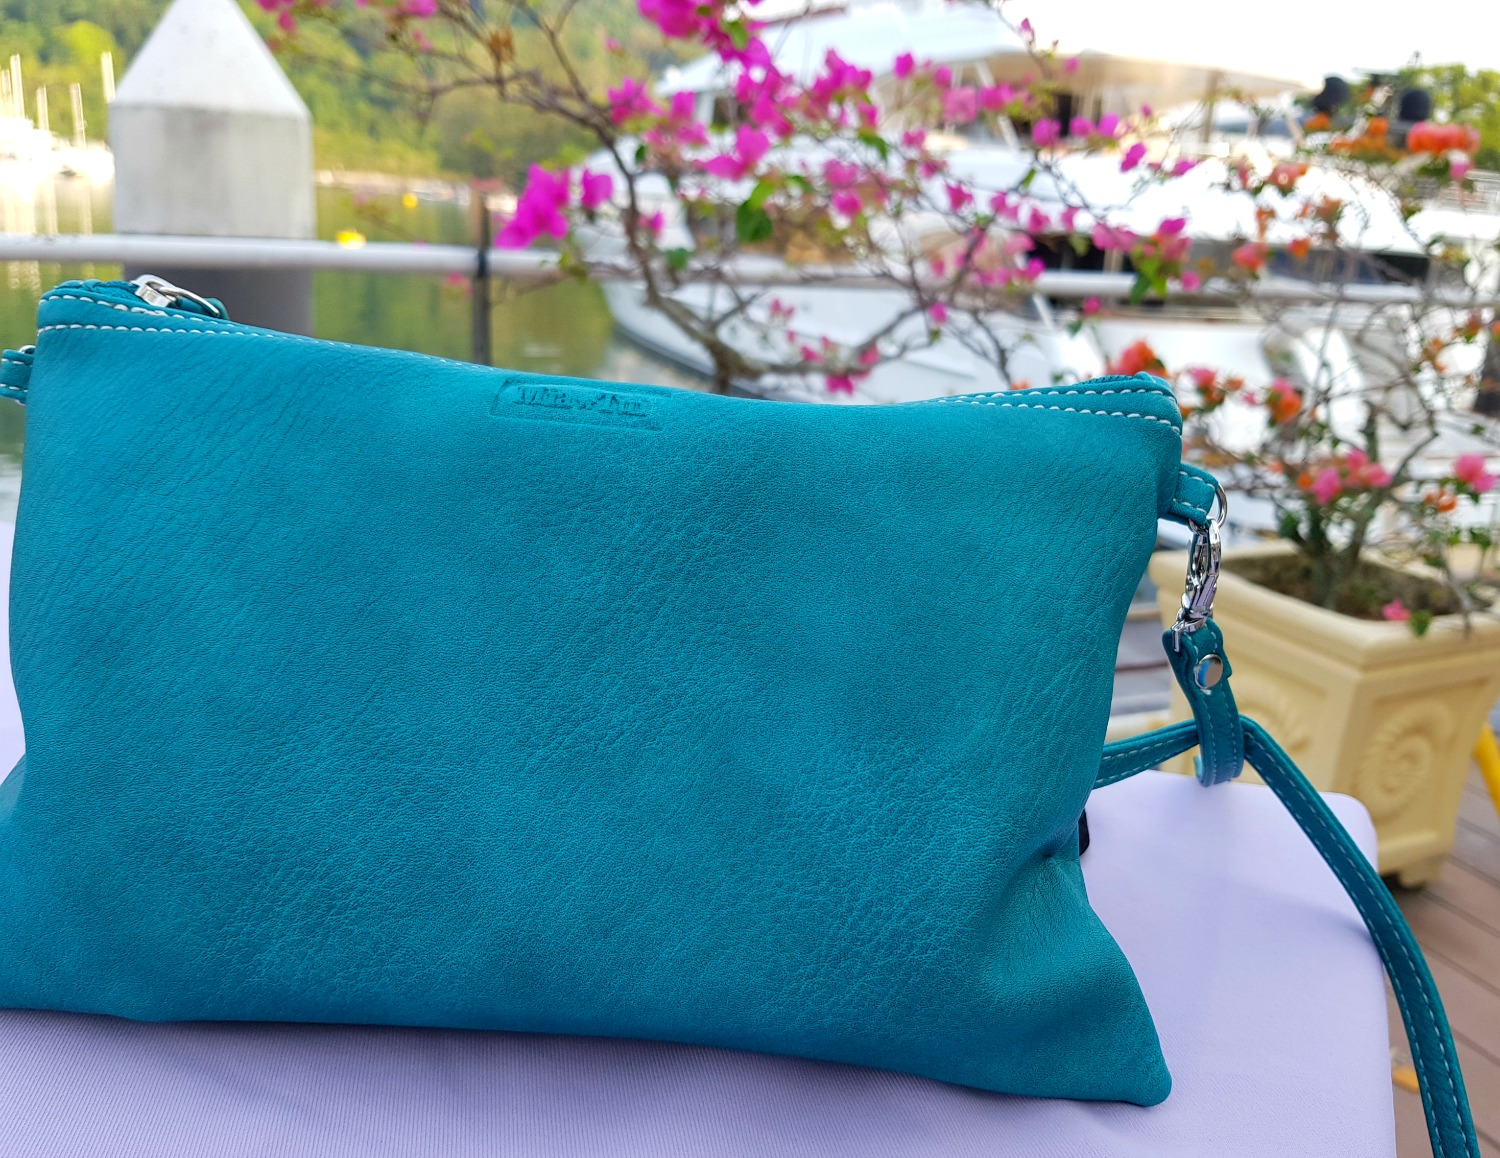 Mini Jen matching clutch bag on a table in a marina restaurant on Langkawi, pink flowers in the background - my Mia Tui hand luggage review